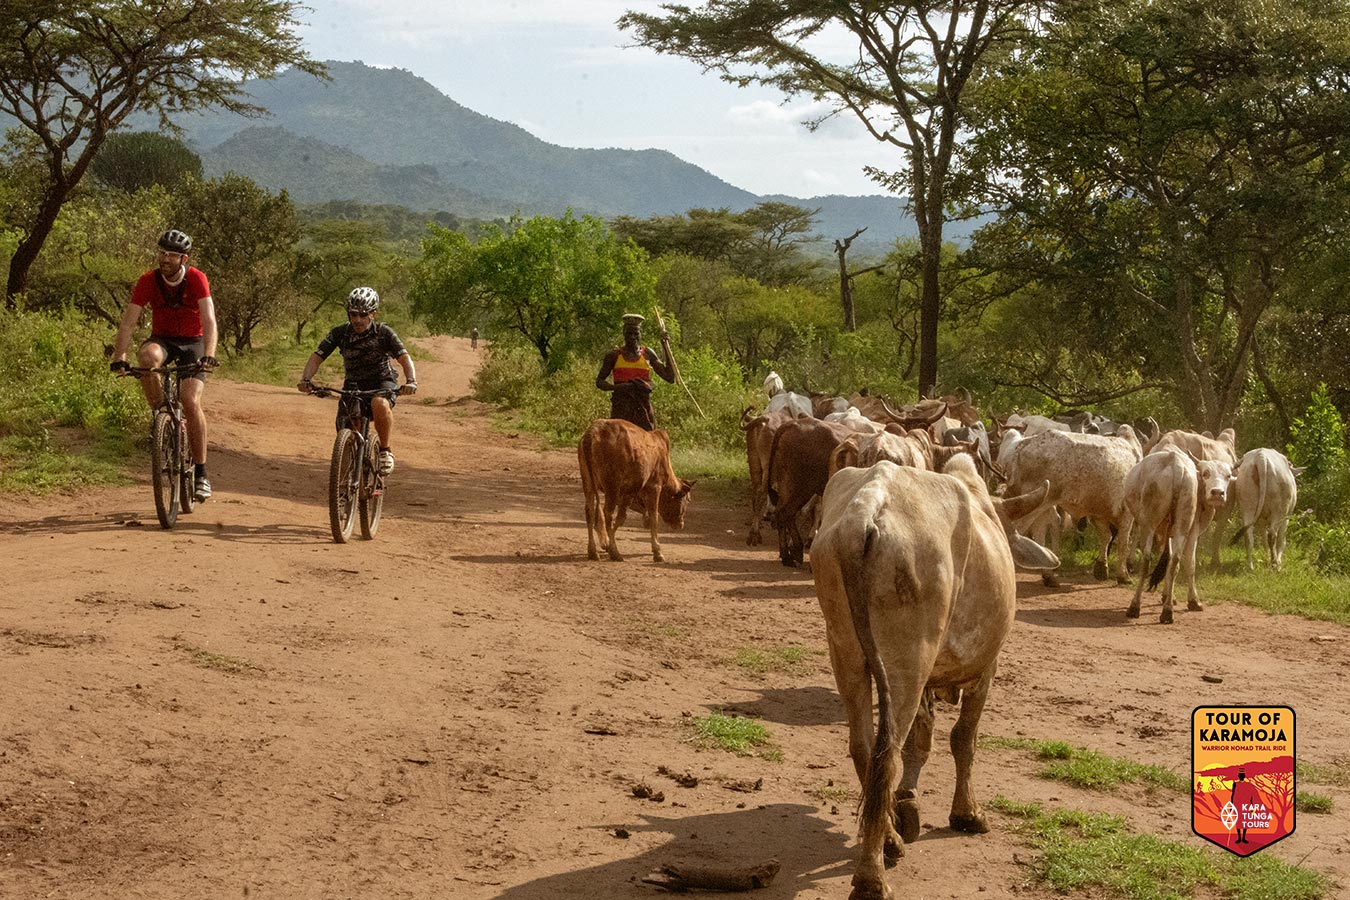 kara-tunga-tour-of-karamoja-uganda-africa-warrior-nomad-trail-bike-cycle-gravel-event-9